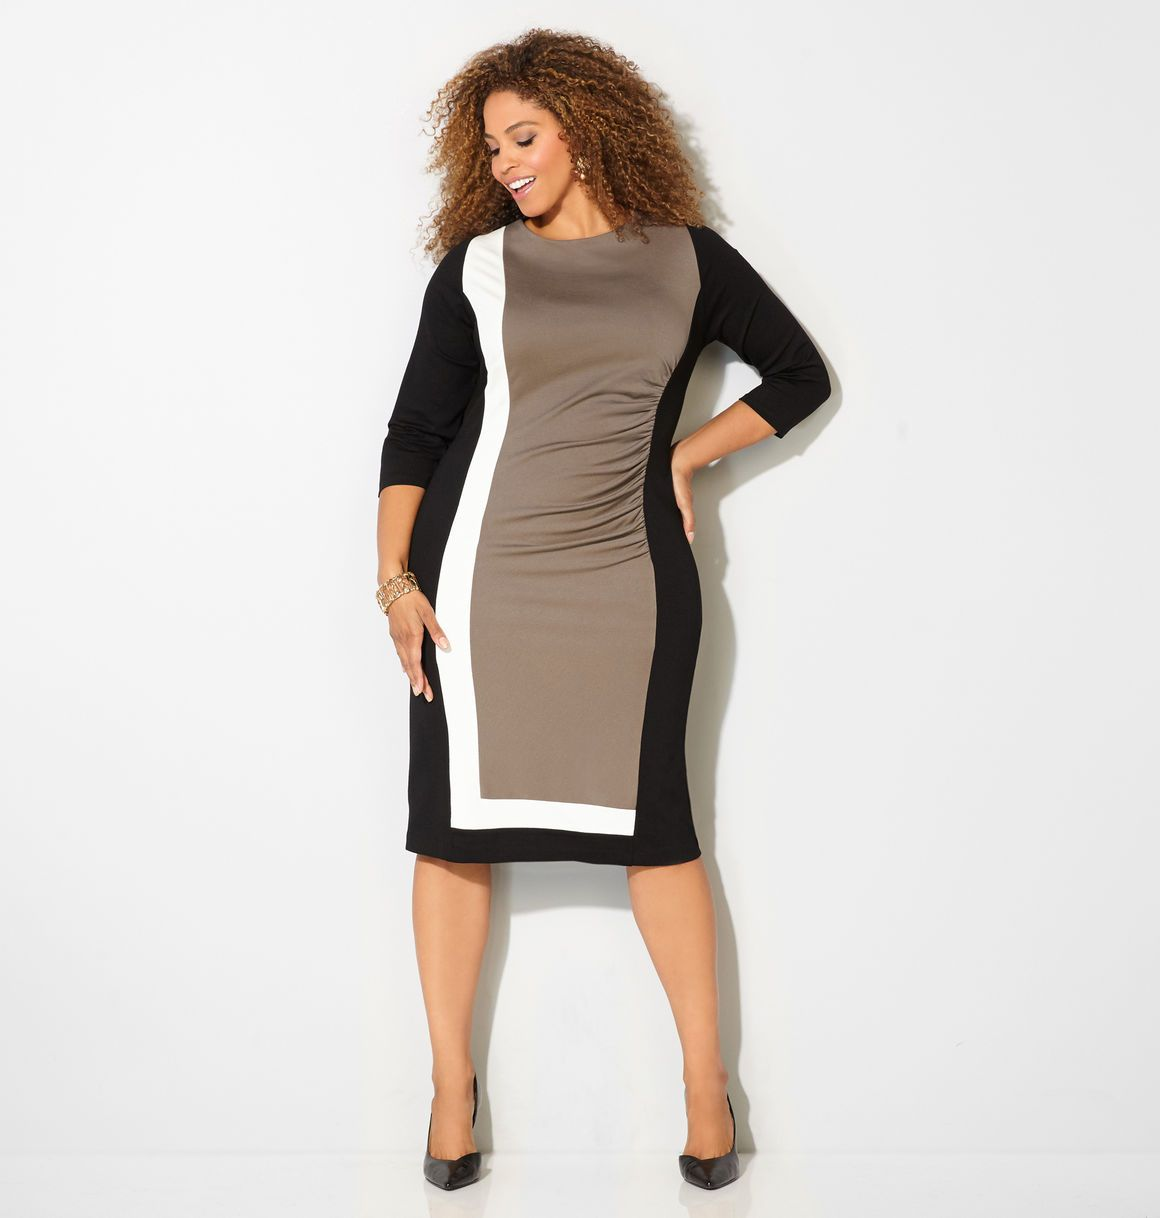 Shop beautiful new fall dresses in sizes 14-32 like the Colorblock ...